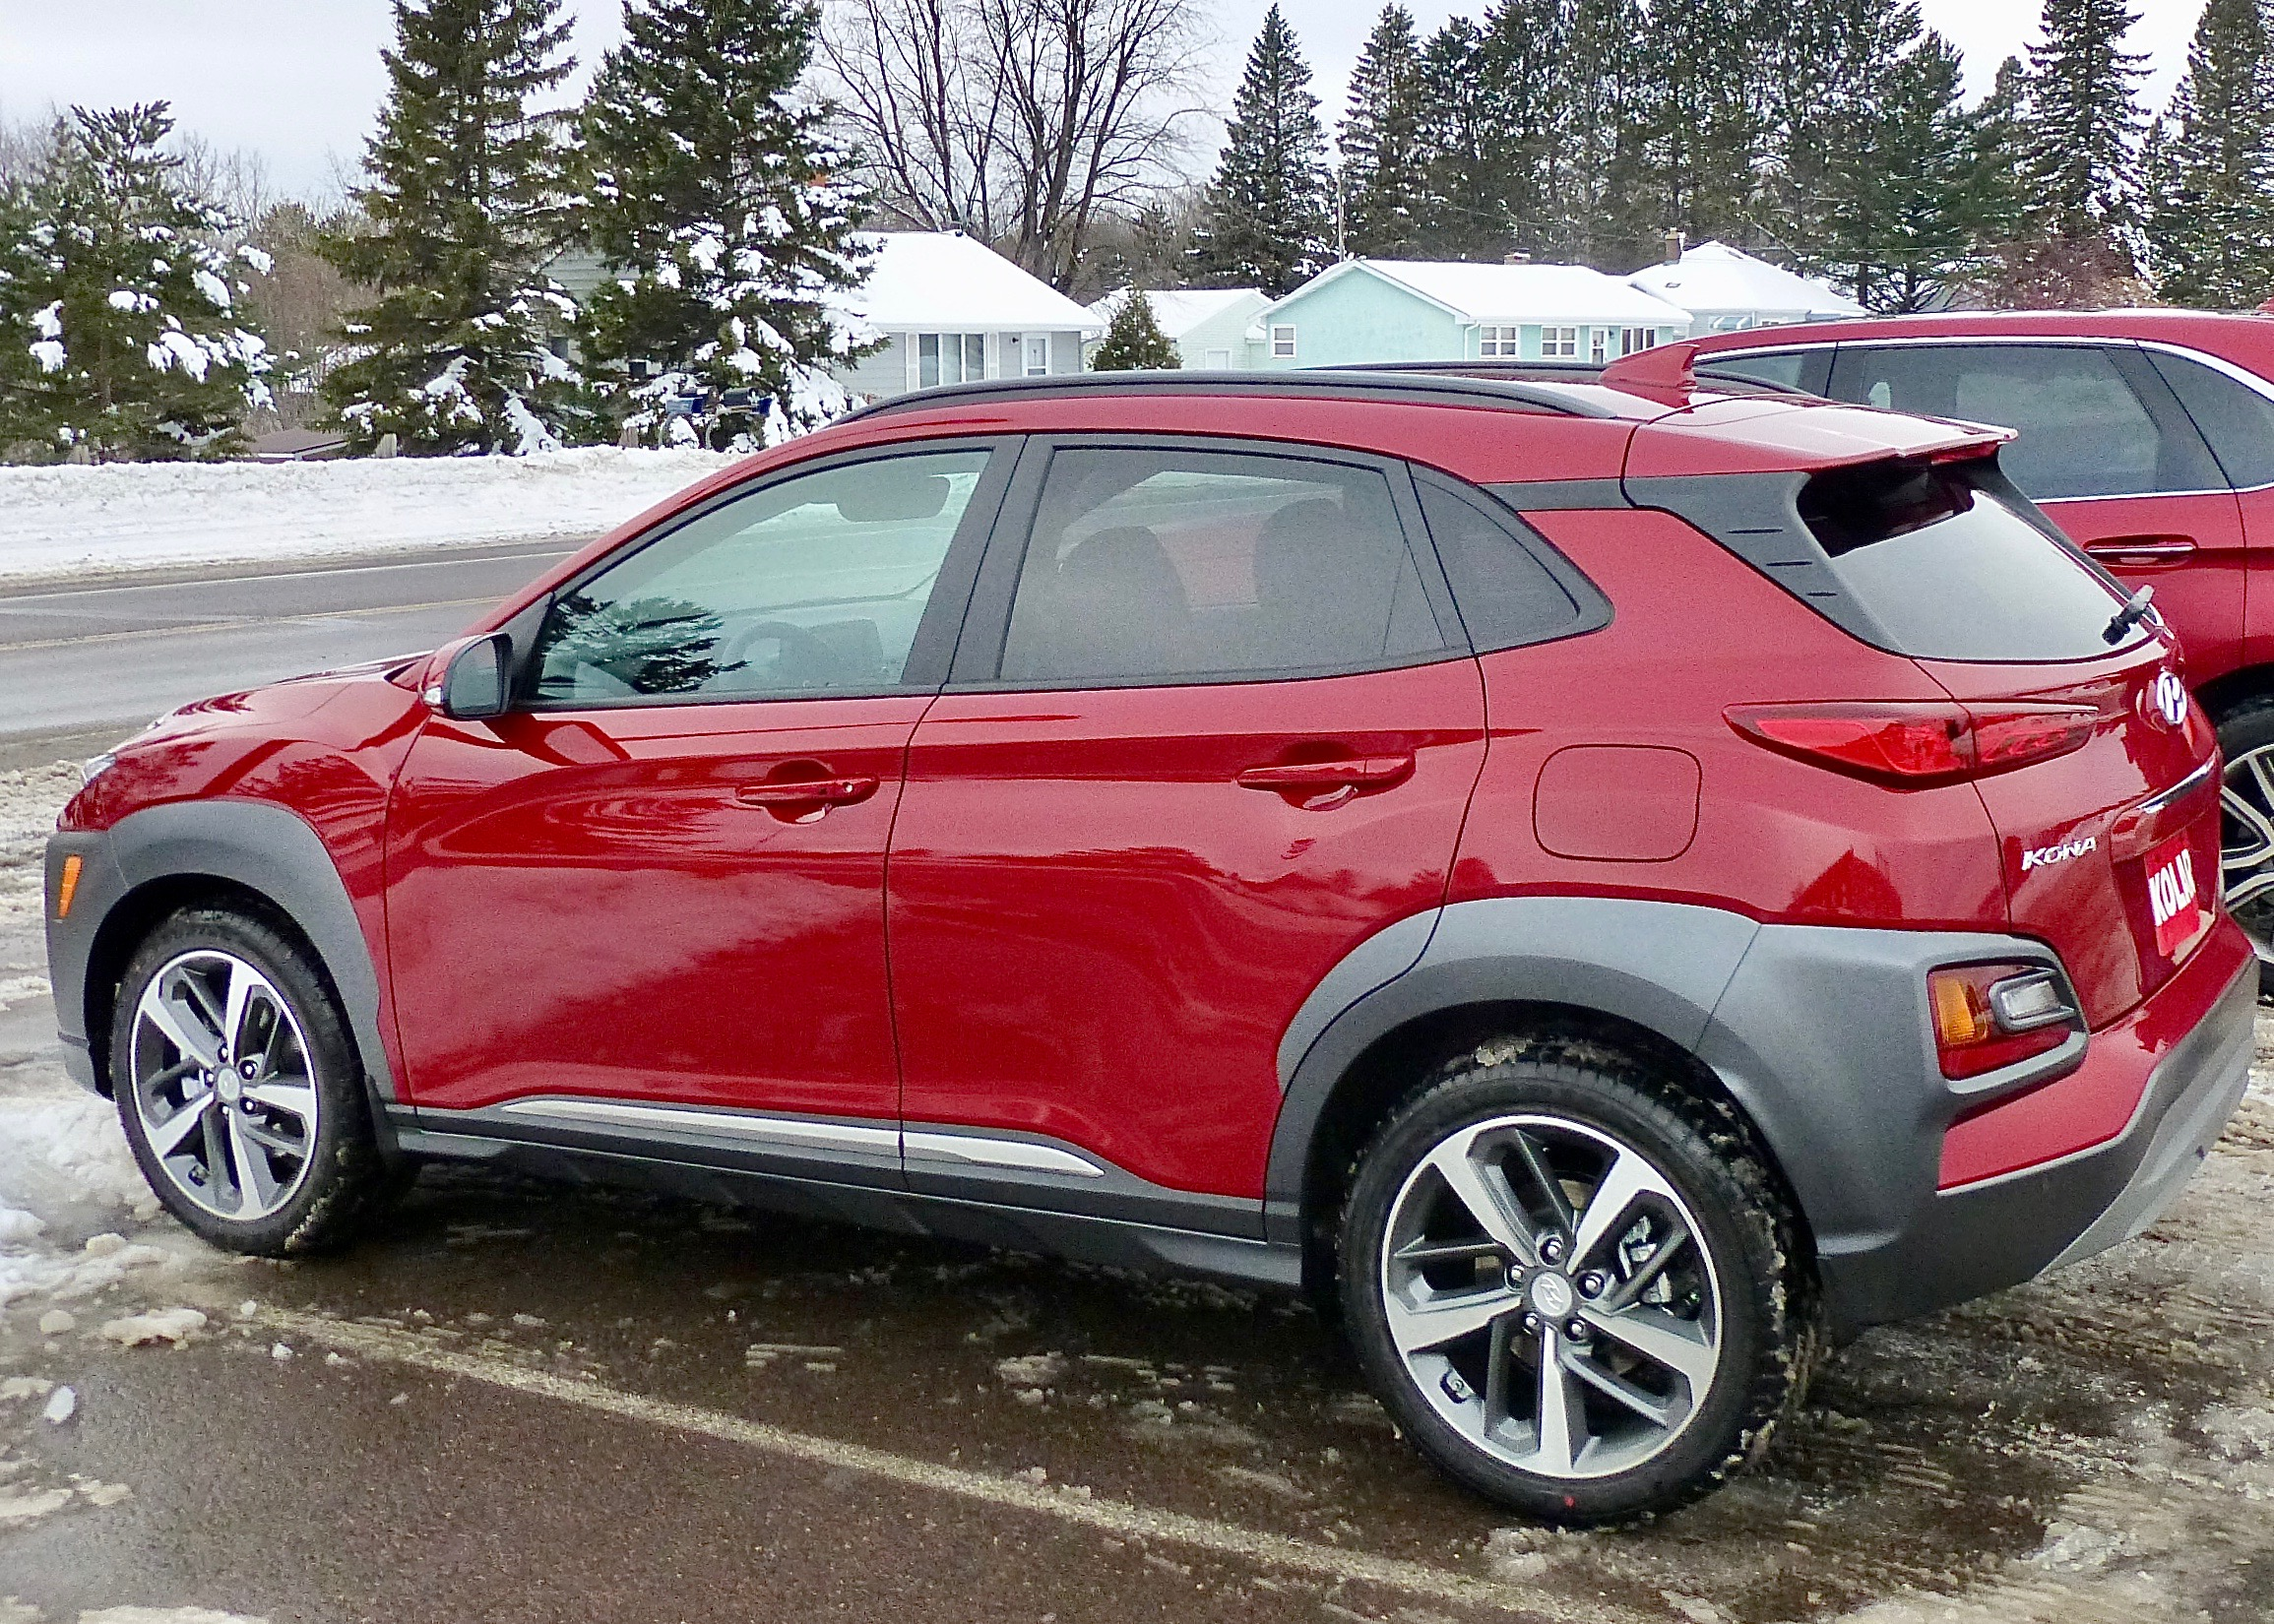 All-wheel-drive platform with 1.6 Turbo and 7-speed dual-clutch are all Kona assets.